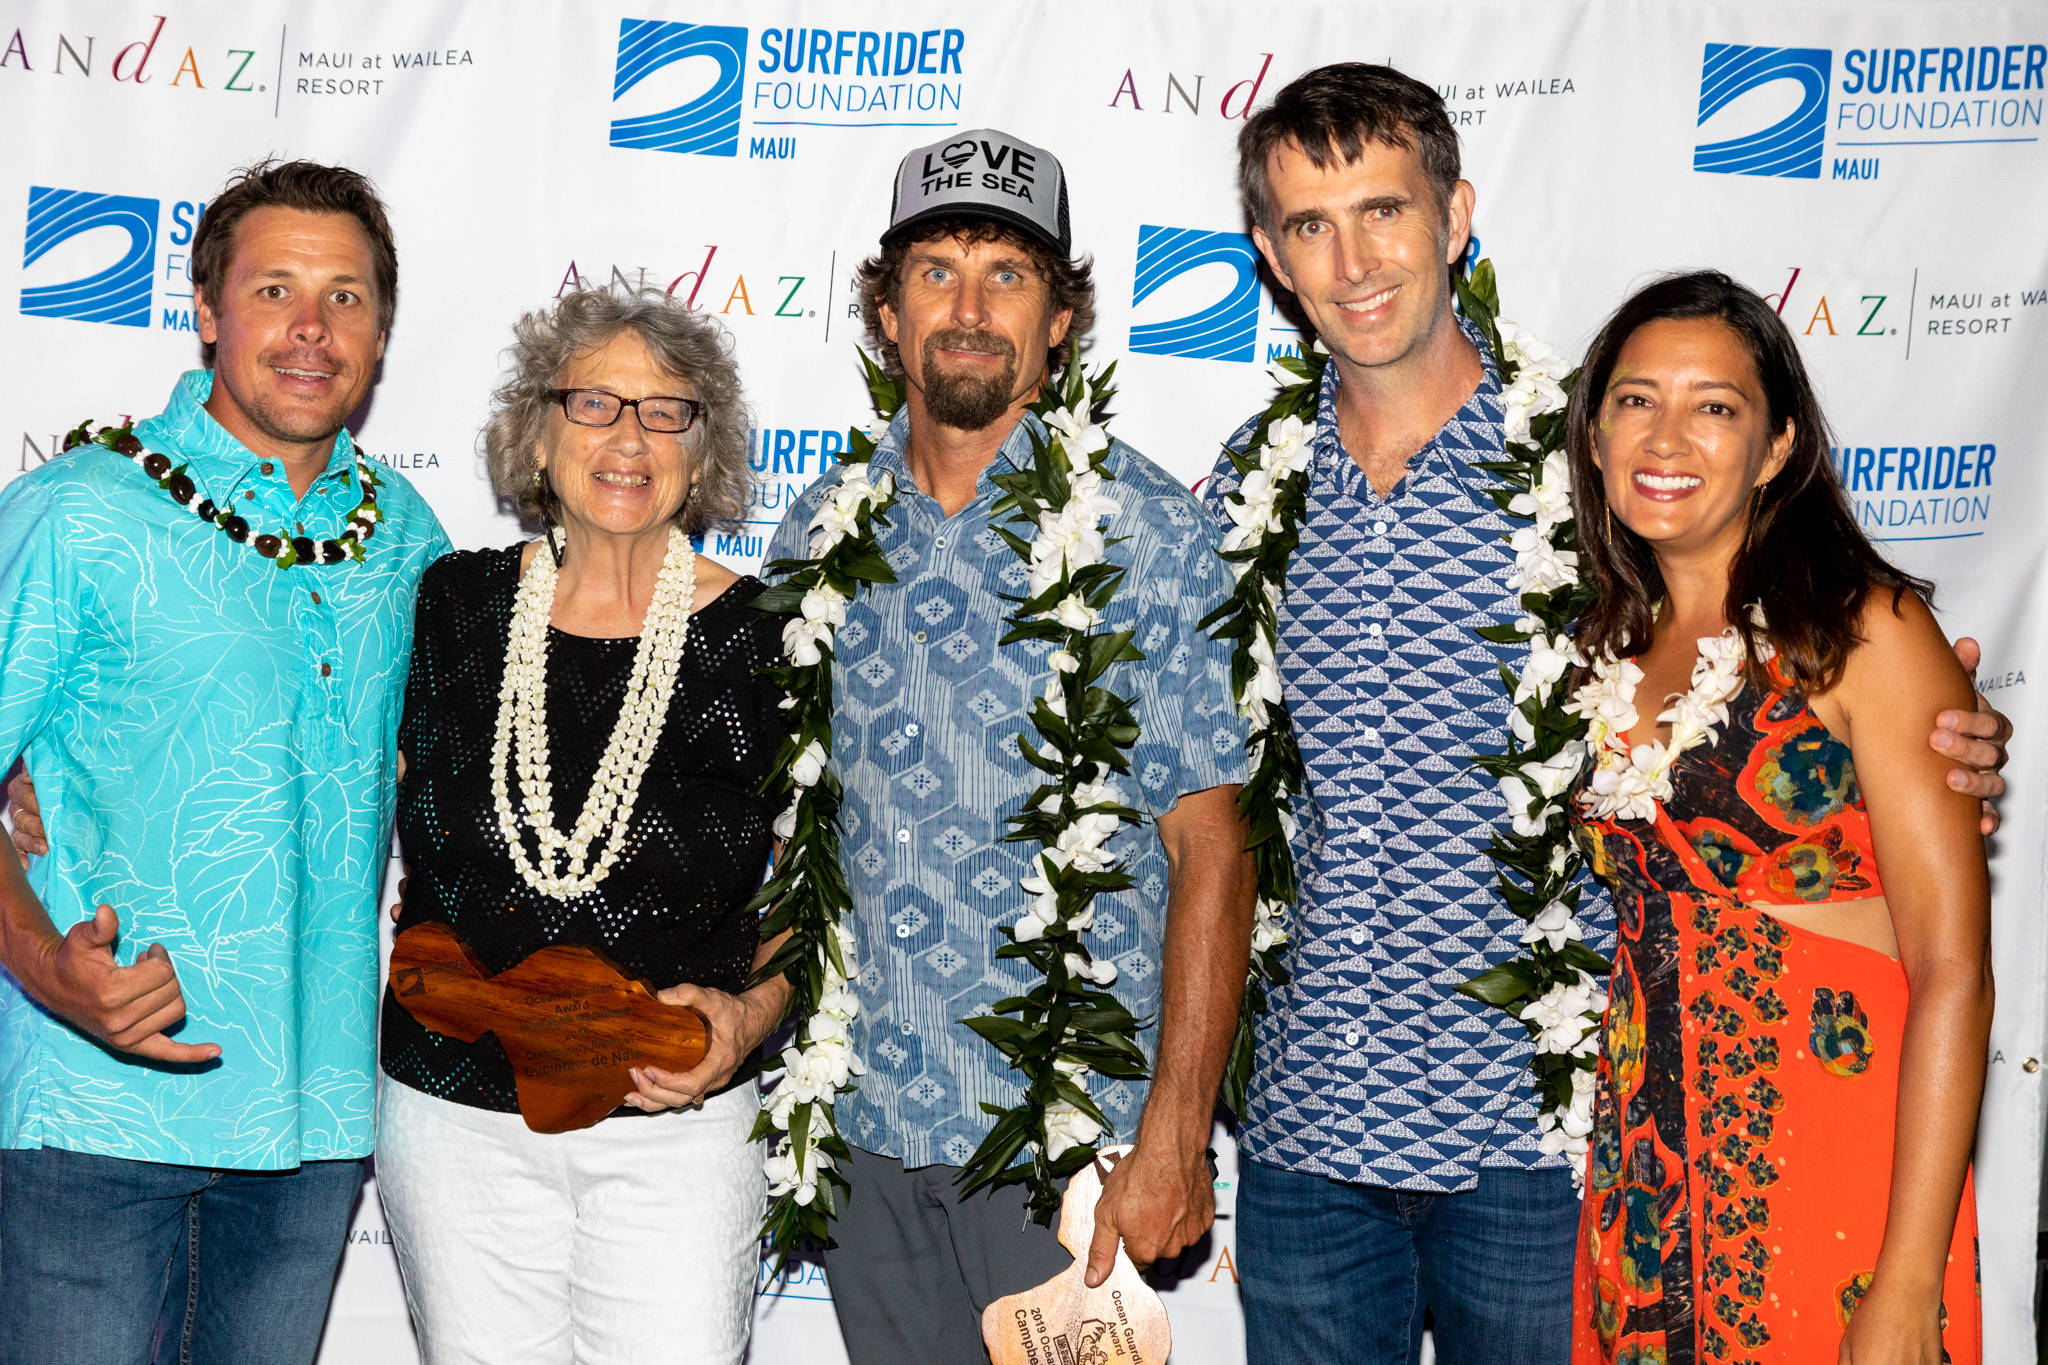 Surfrider-Foundation-OGA-10-12-19_129_web_berkowitz